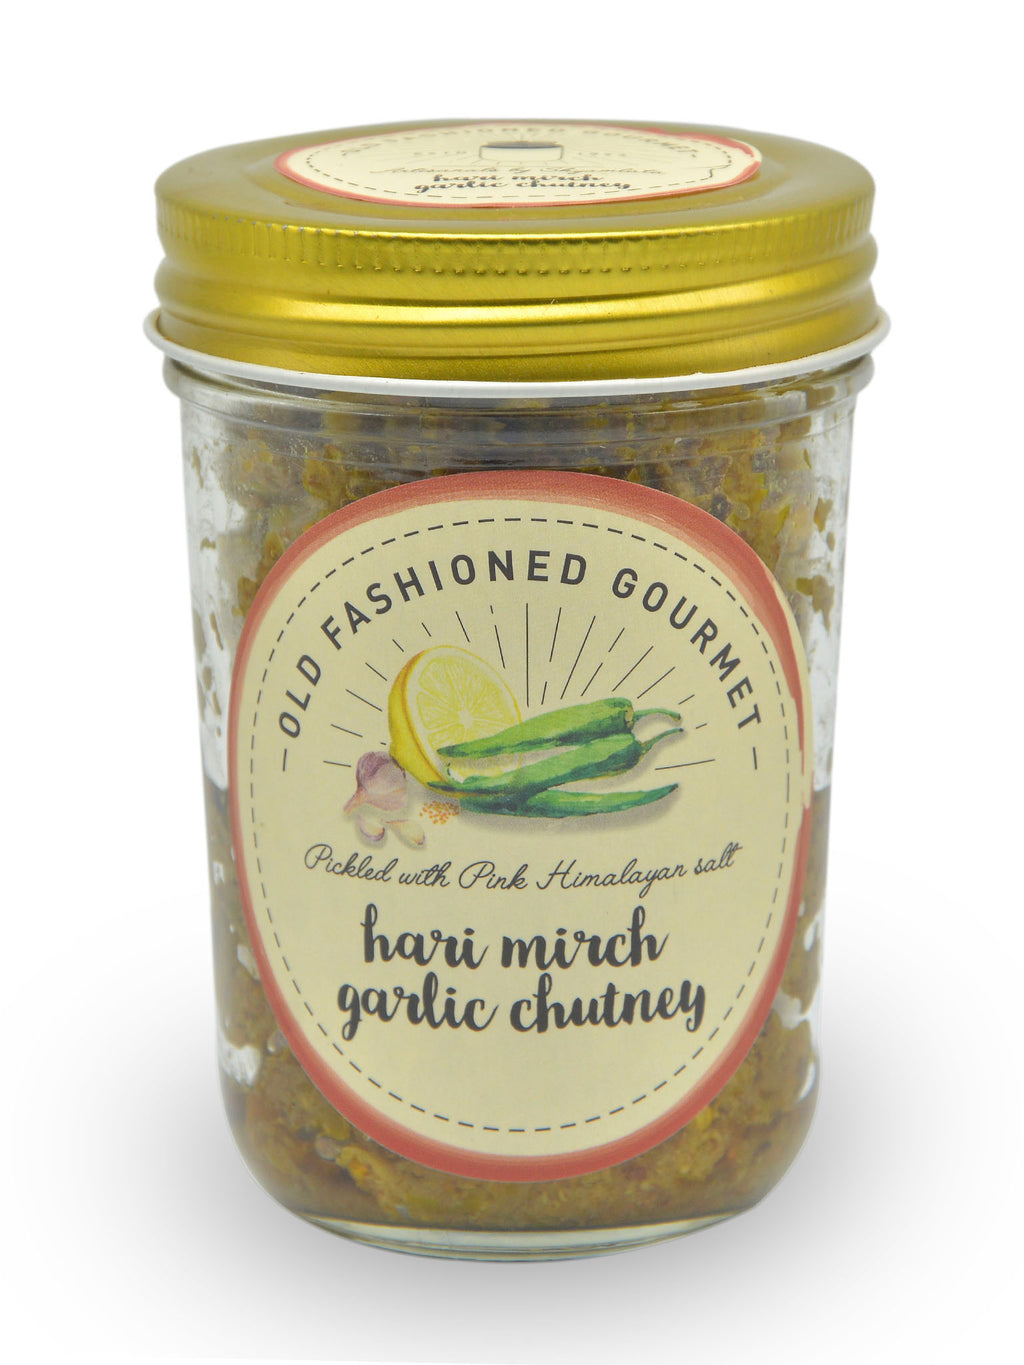 Hari Mirch Garlic Chutney